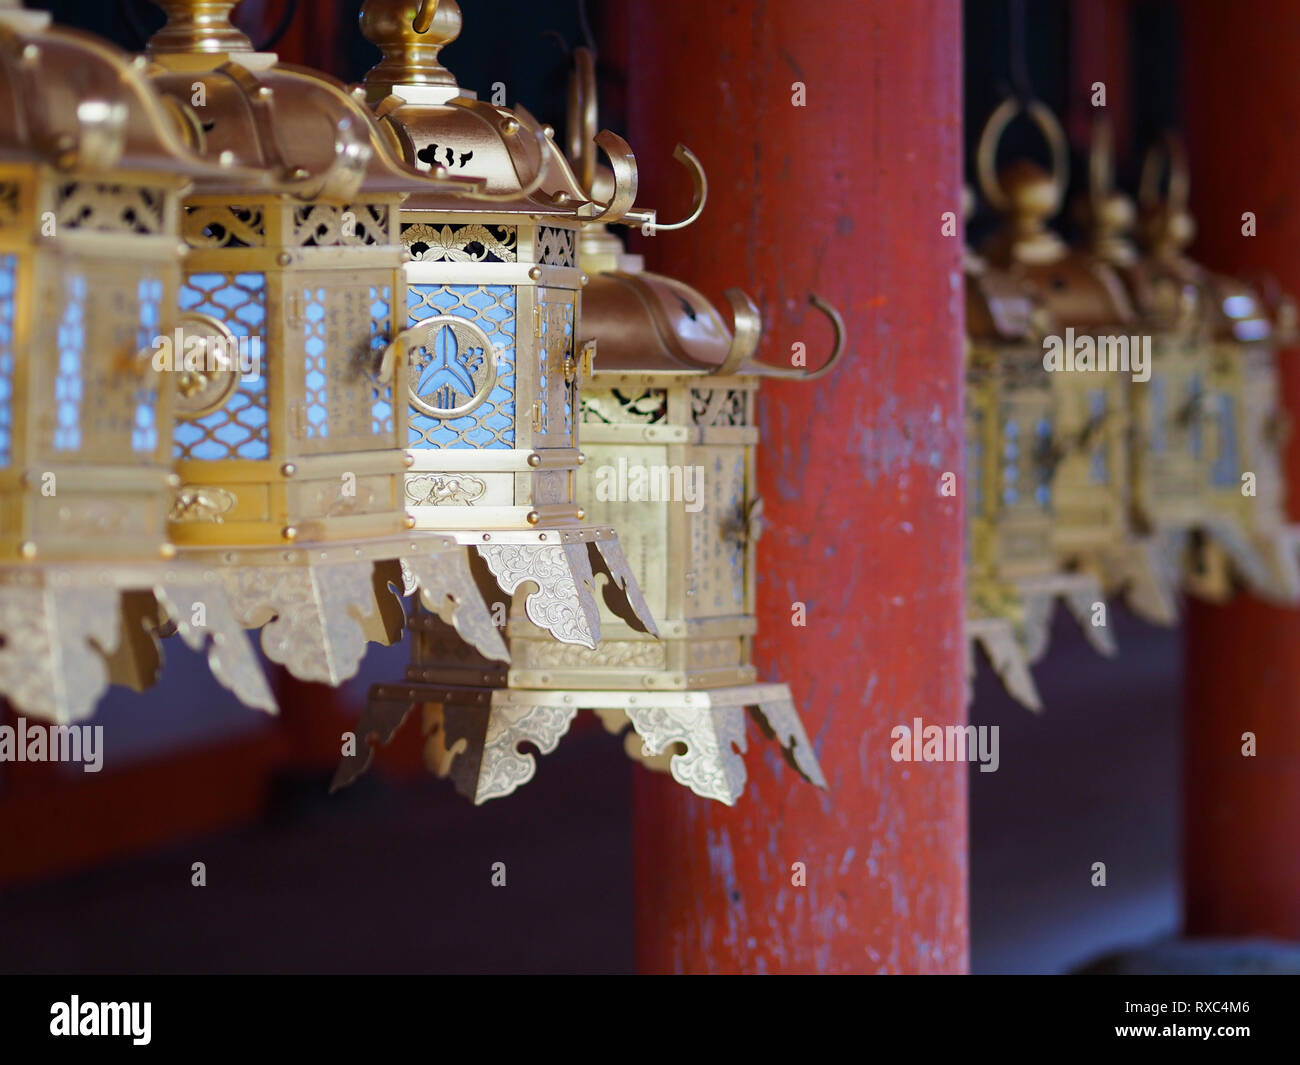 Nara, Japan - 15 Oct 2018: A row of lanterns at a temple near the Kasuga Grand Shrine at Nara, Japan - Stock Image